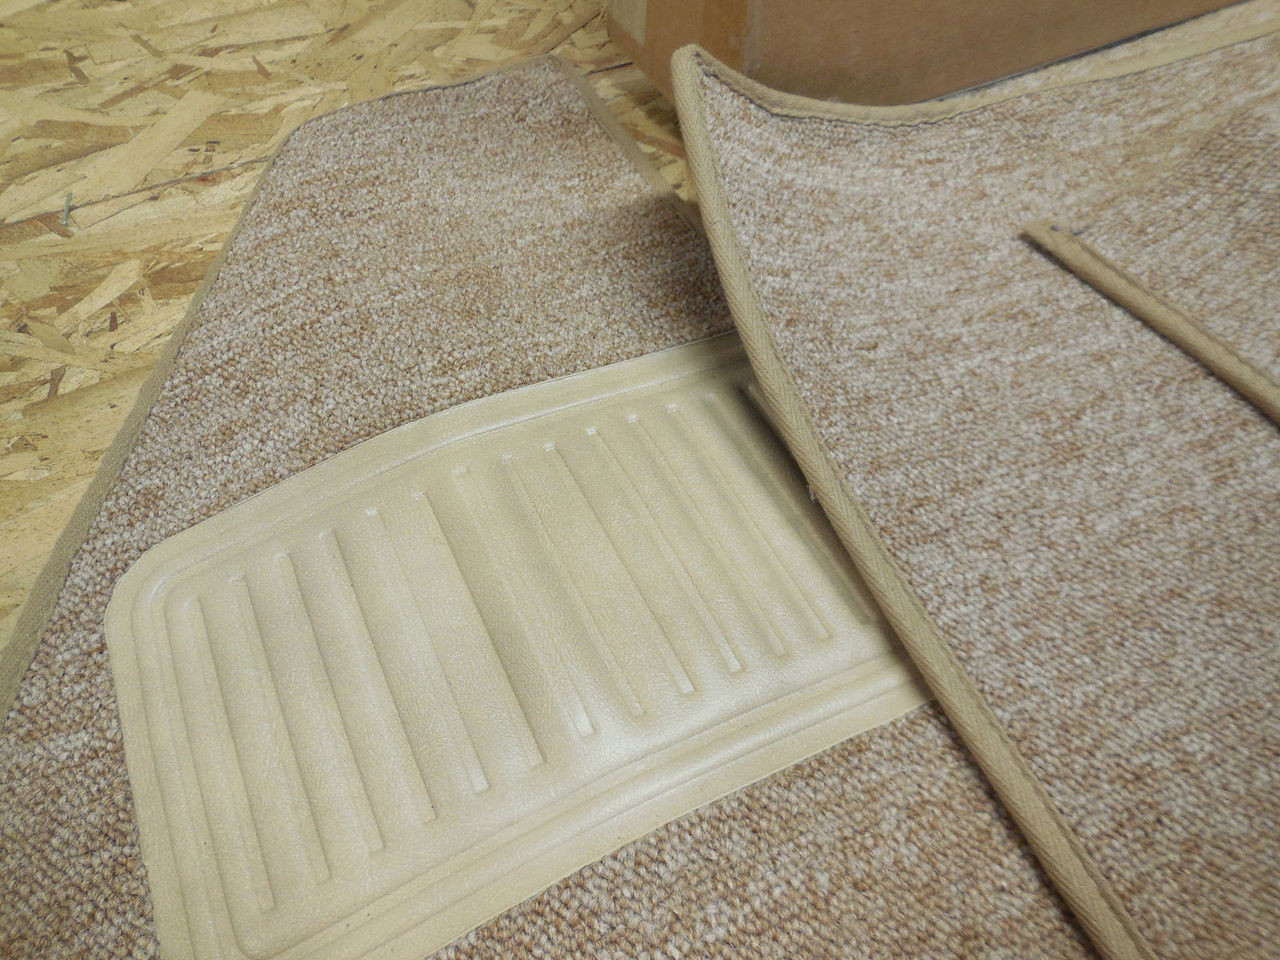 TMI  VW BUG  CARPET KIT 7PC,  62-64 WITH  FOOT REST OATMEAL W/CLOTH BINDING